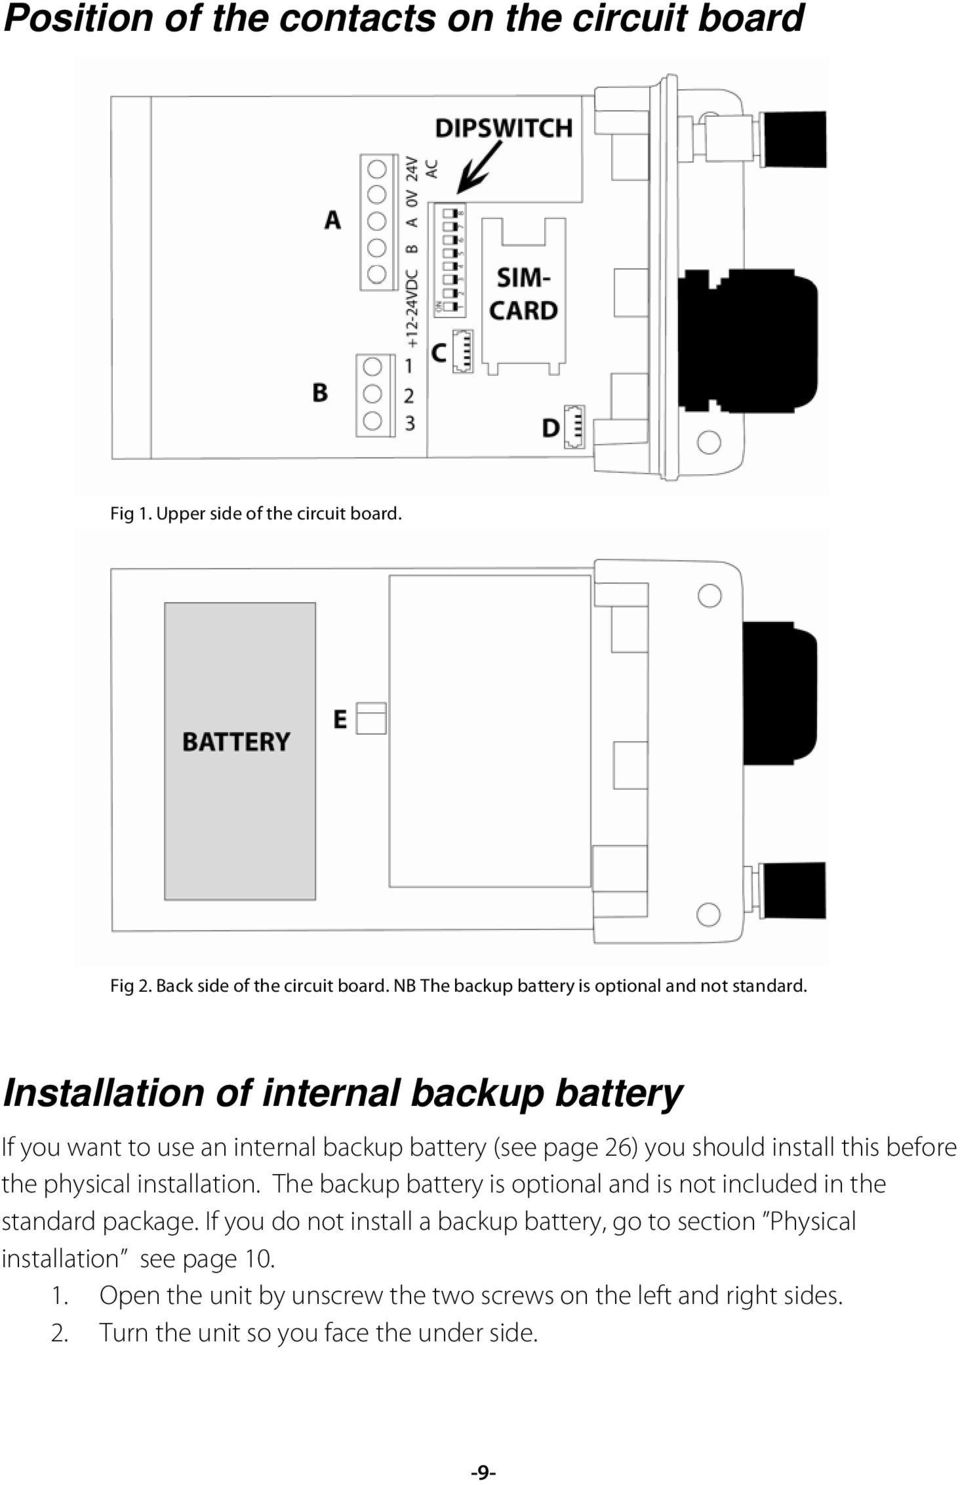 Ontech Gsm User Manual Pdf Battery Backup Circuit Page 1 Installation Of Internal If You Want To Use An See